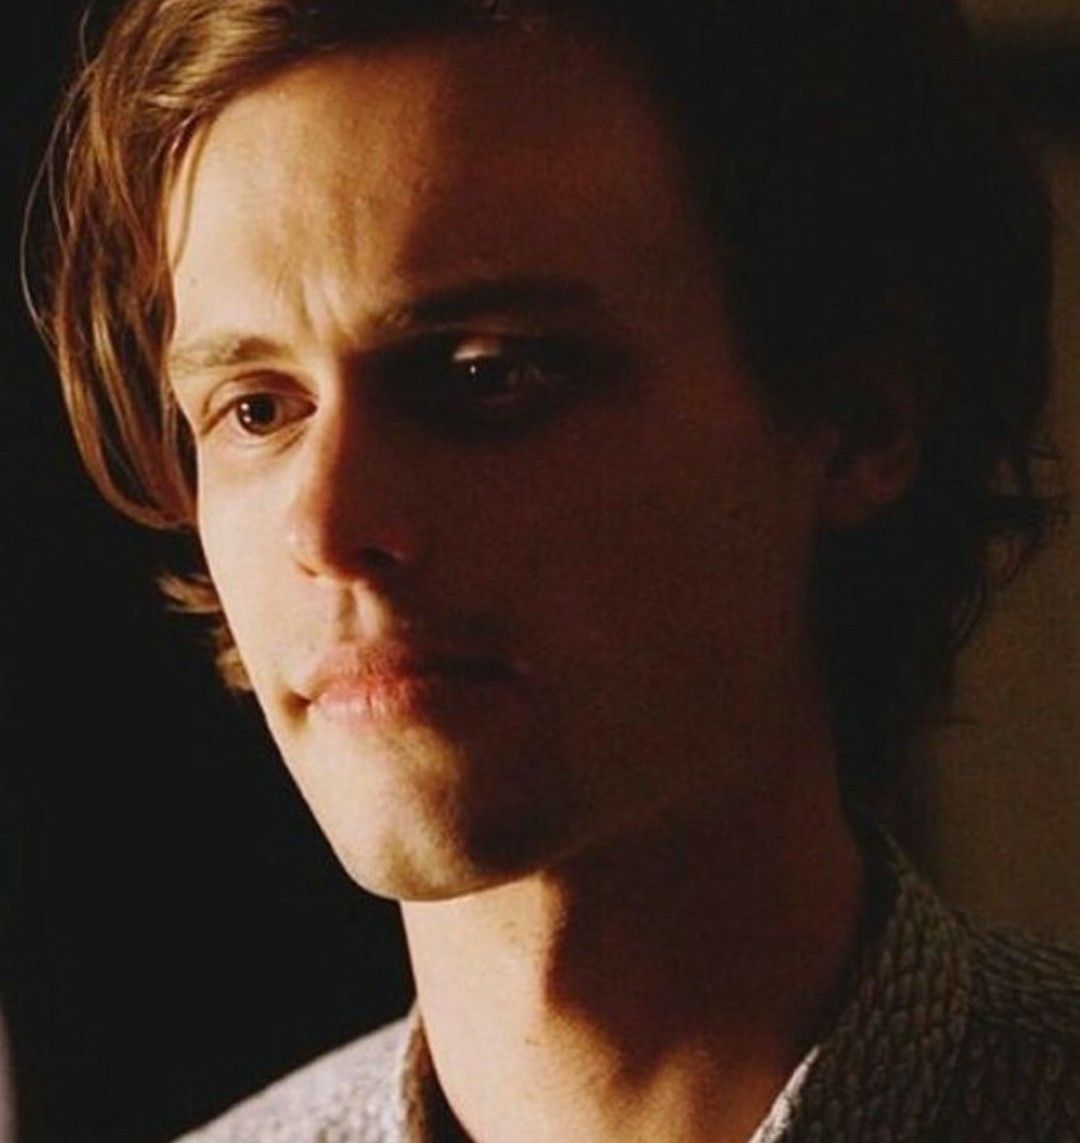 Pin By Karen Austin On Matthew Gray Gubler Matthew Gray Gubler Matthew Gray Spencer Reid Criminal Minds